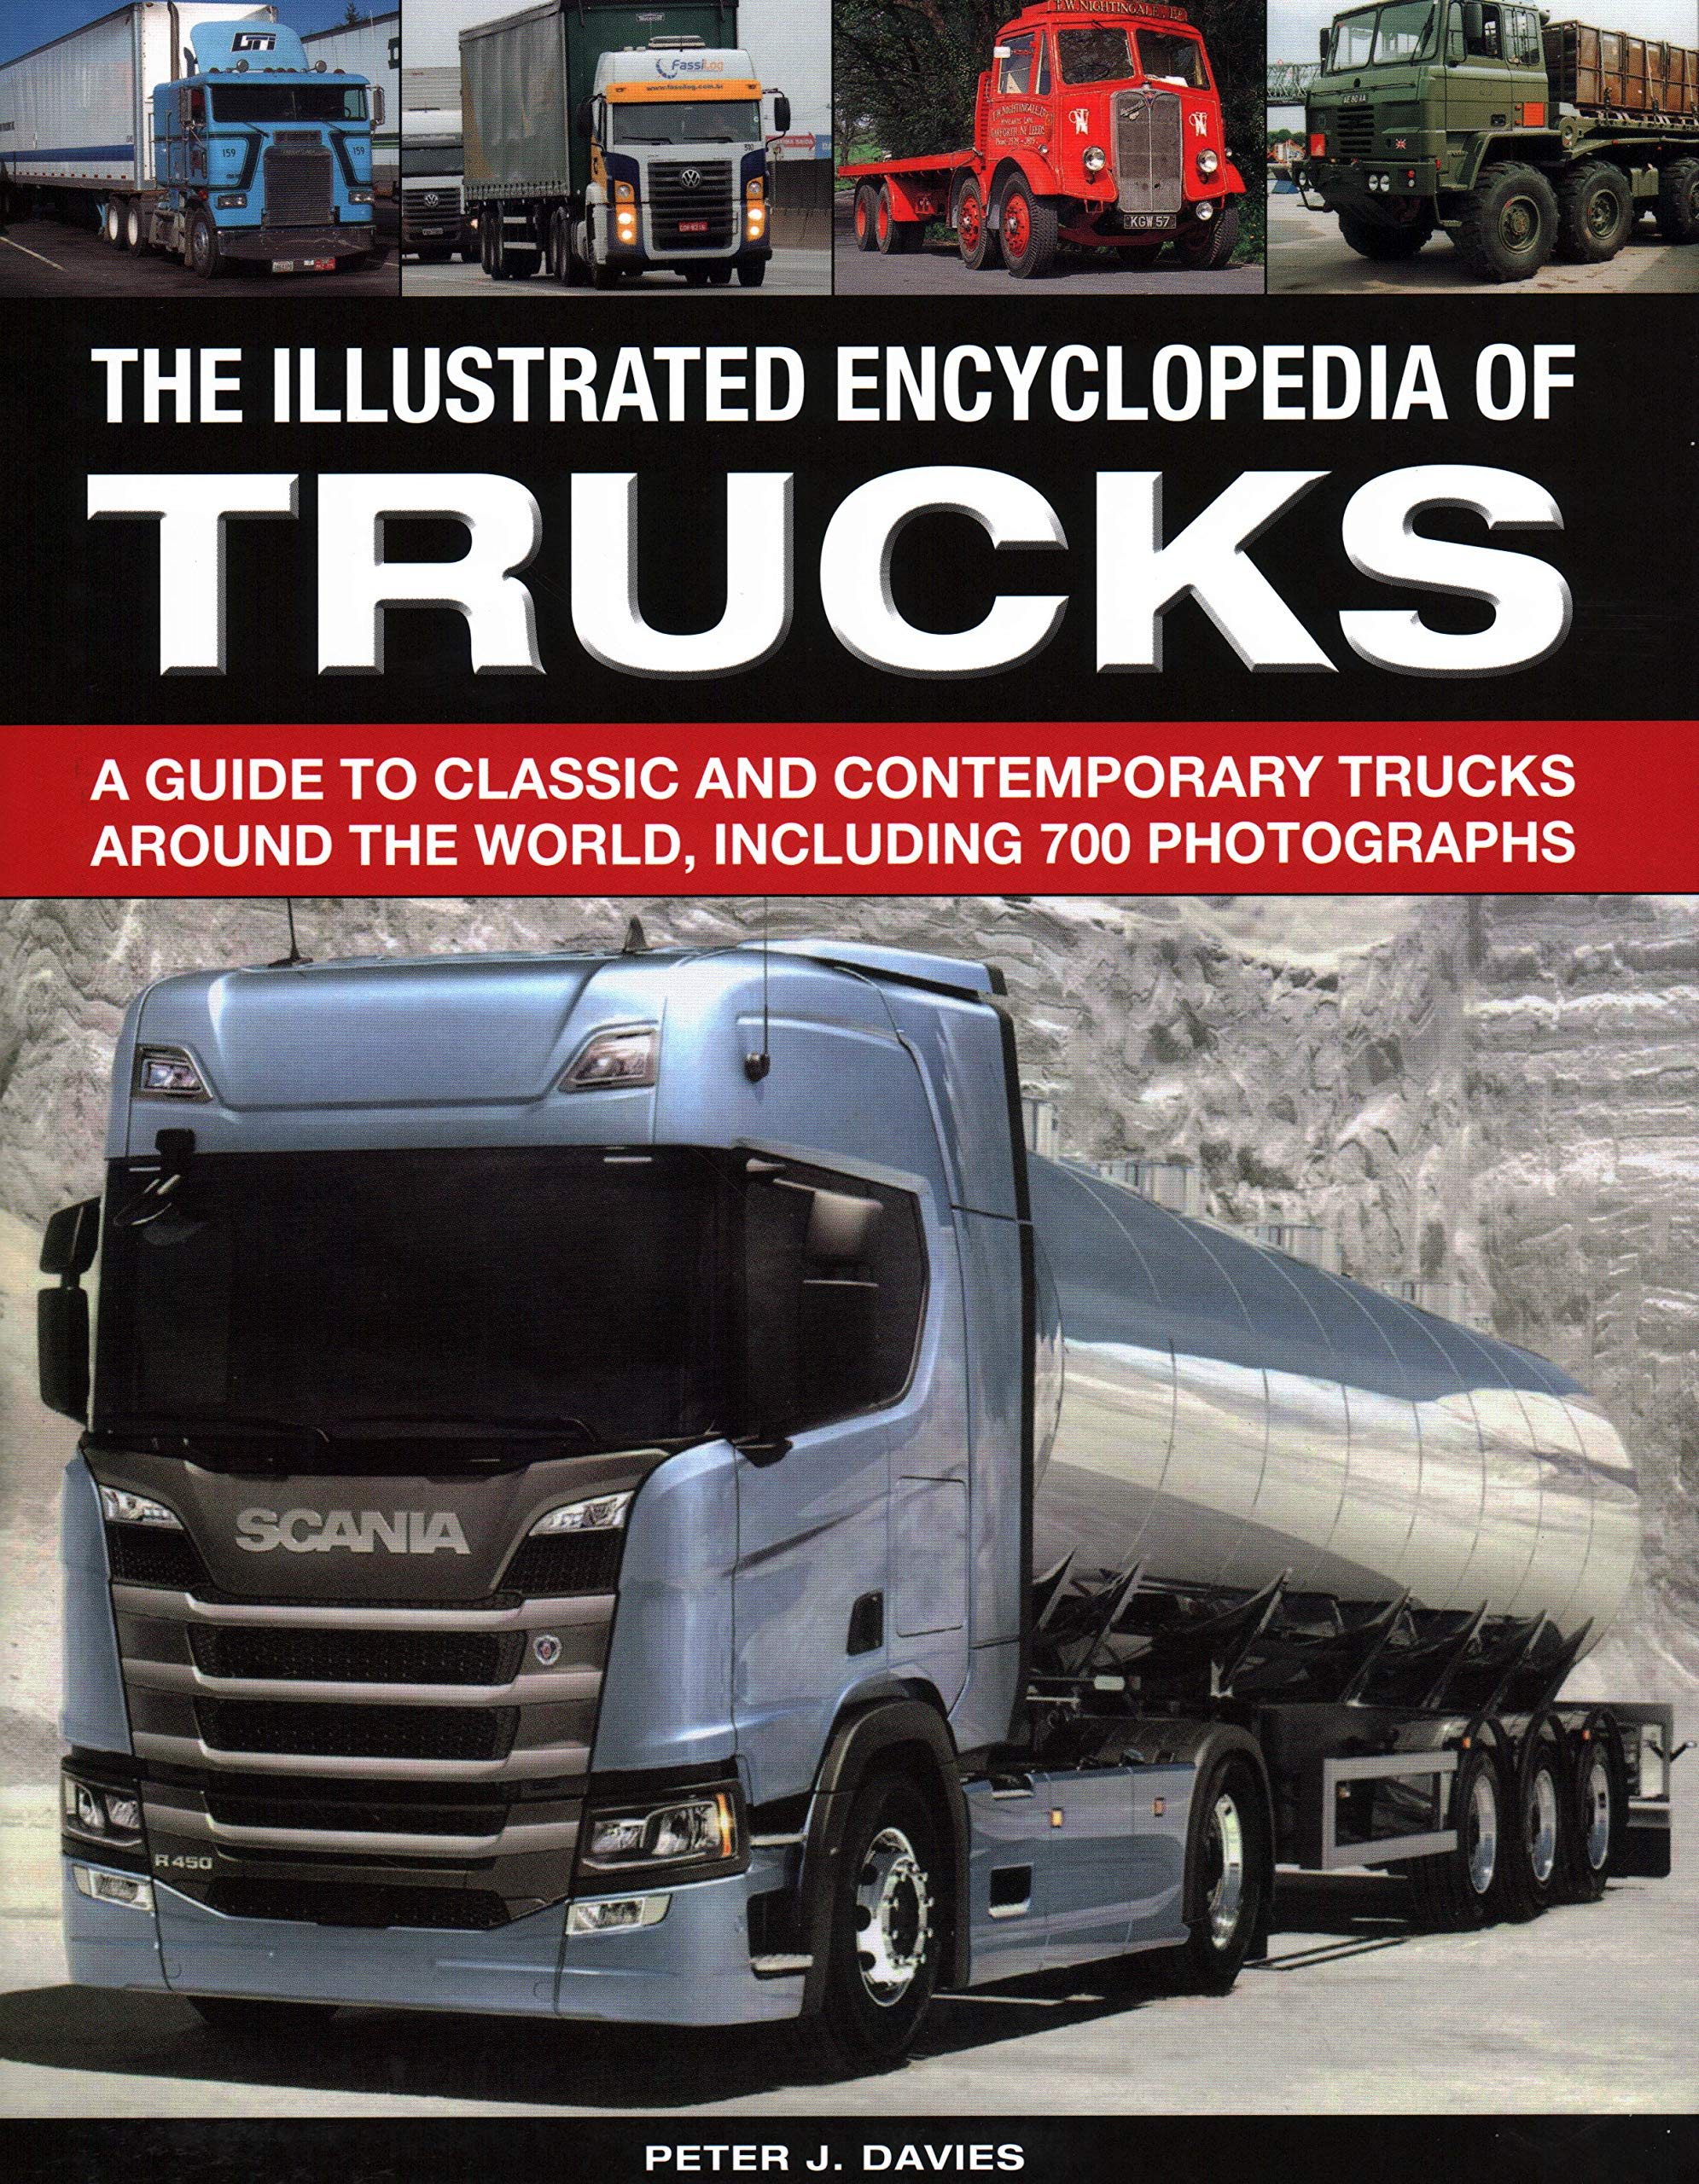 The Illus Encyclopedia of Trucks: A Guide To Classic And Contemporary Trucks Around The World, Including 700 Photographs